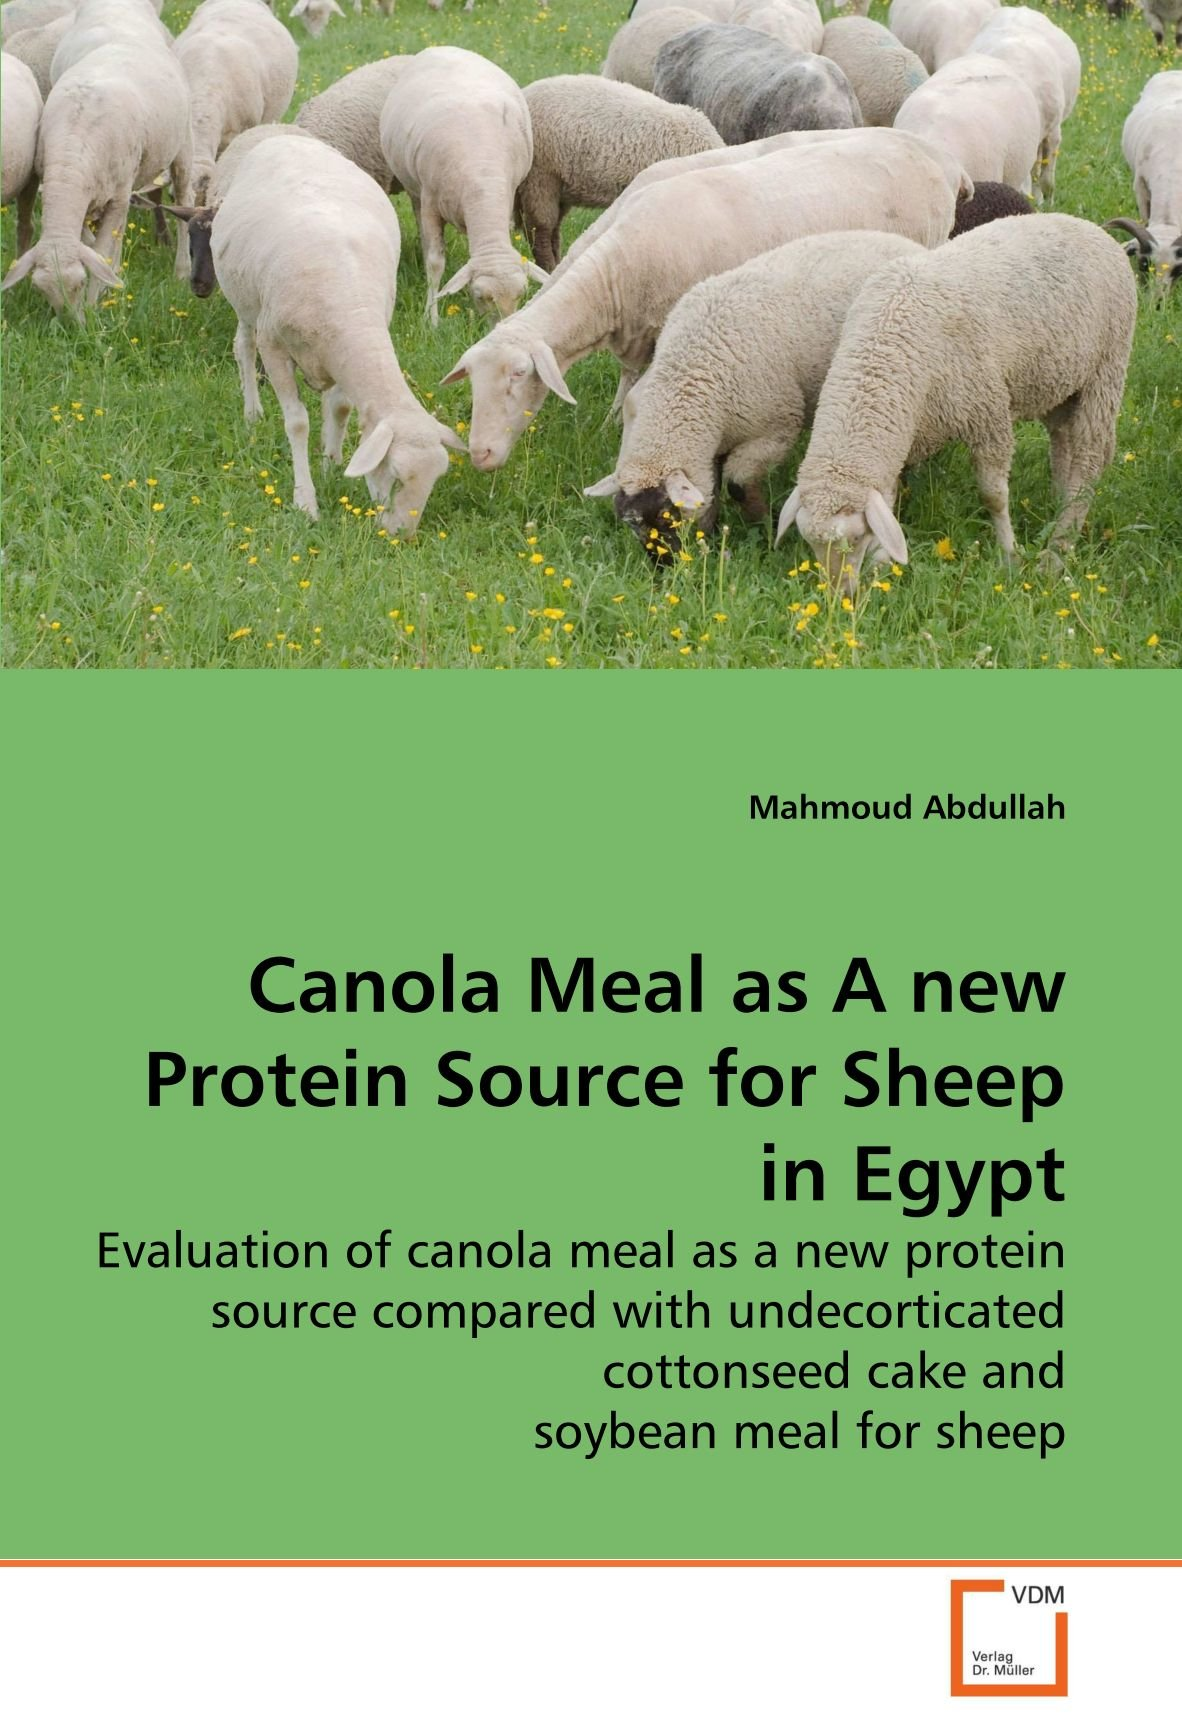 Canola Meal as A new Protein Source for Sheep in Egypt: Evaluation of canola meal as a new protein source compared with undecorticated cottonseed cake and soybean meal for sheep PDF